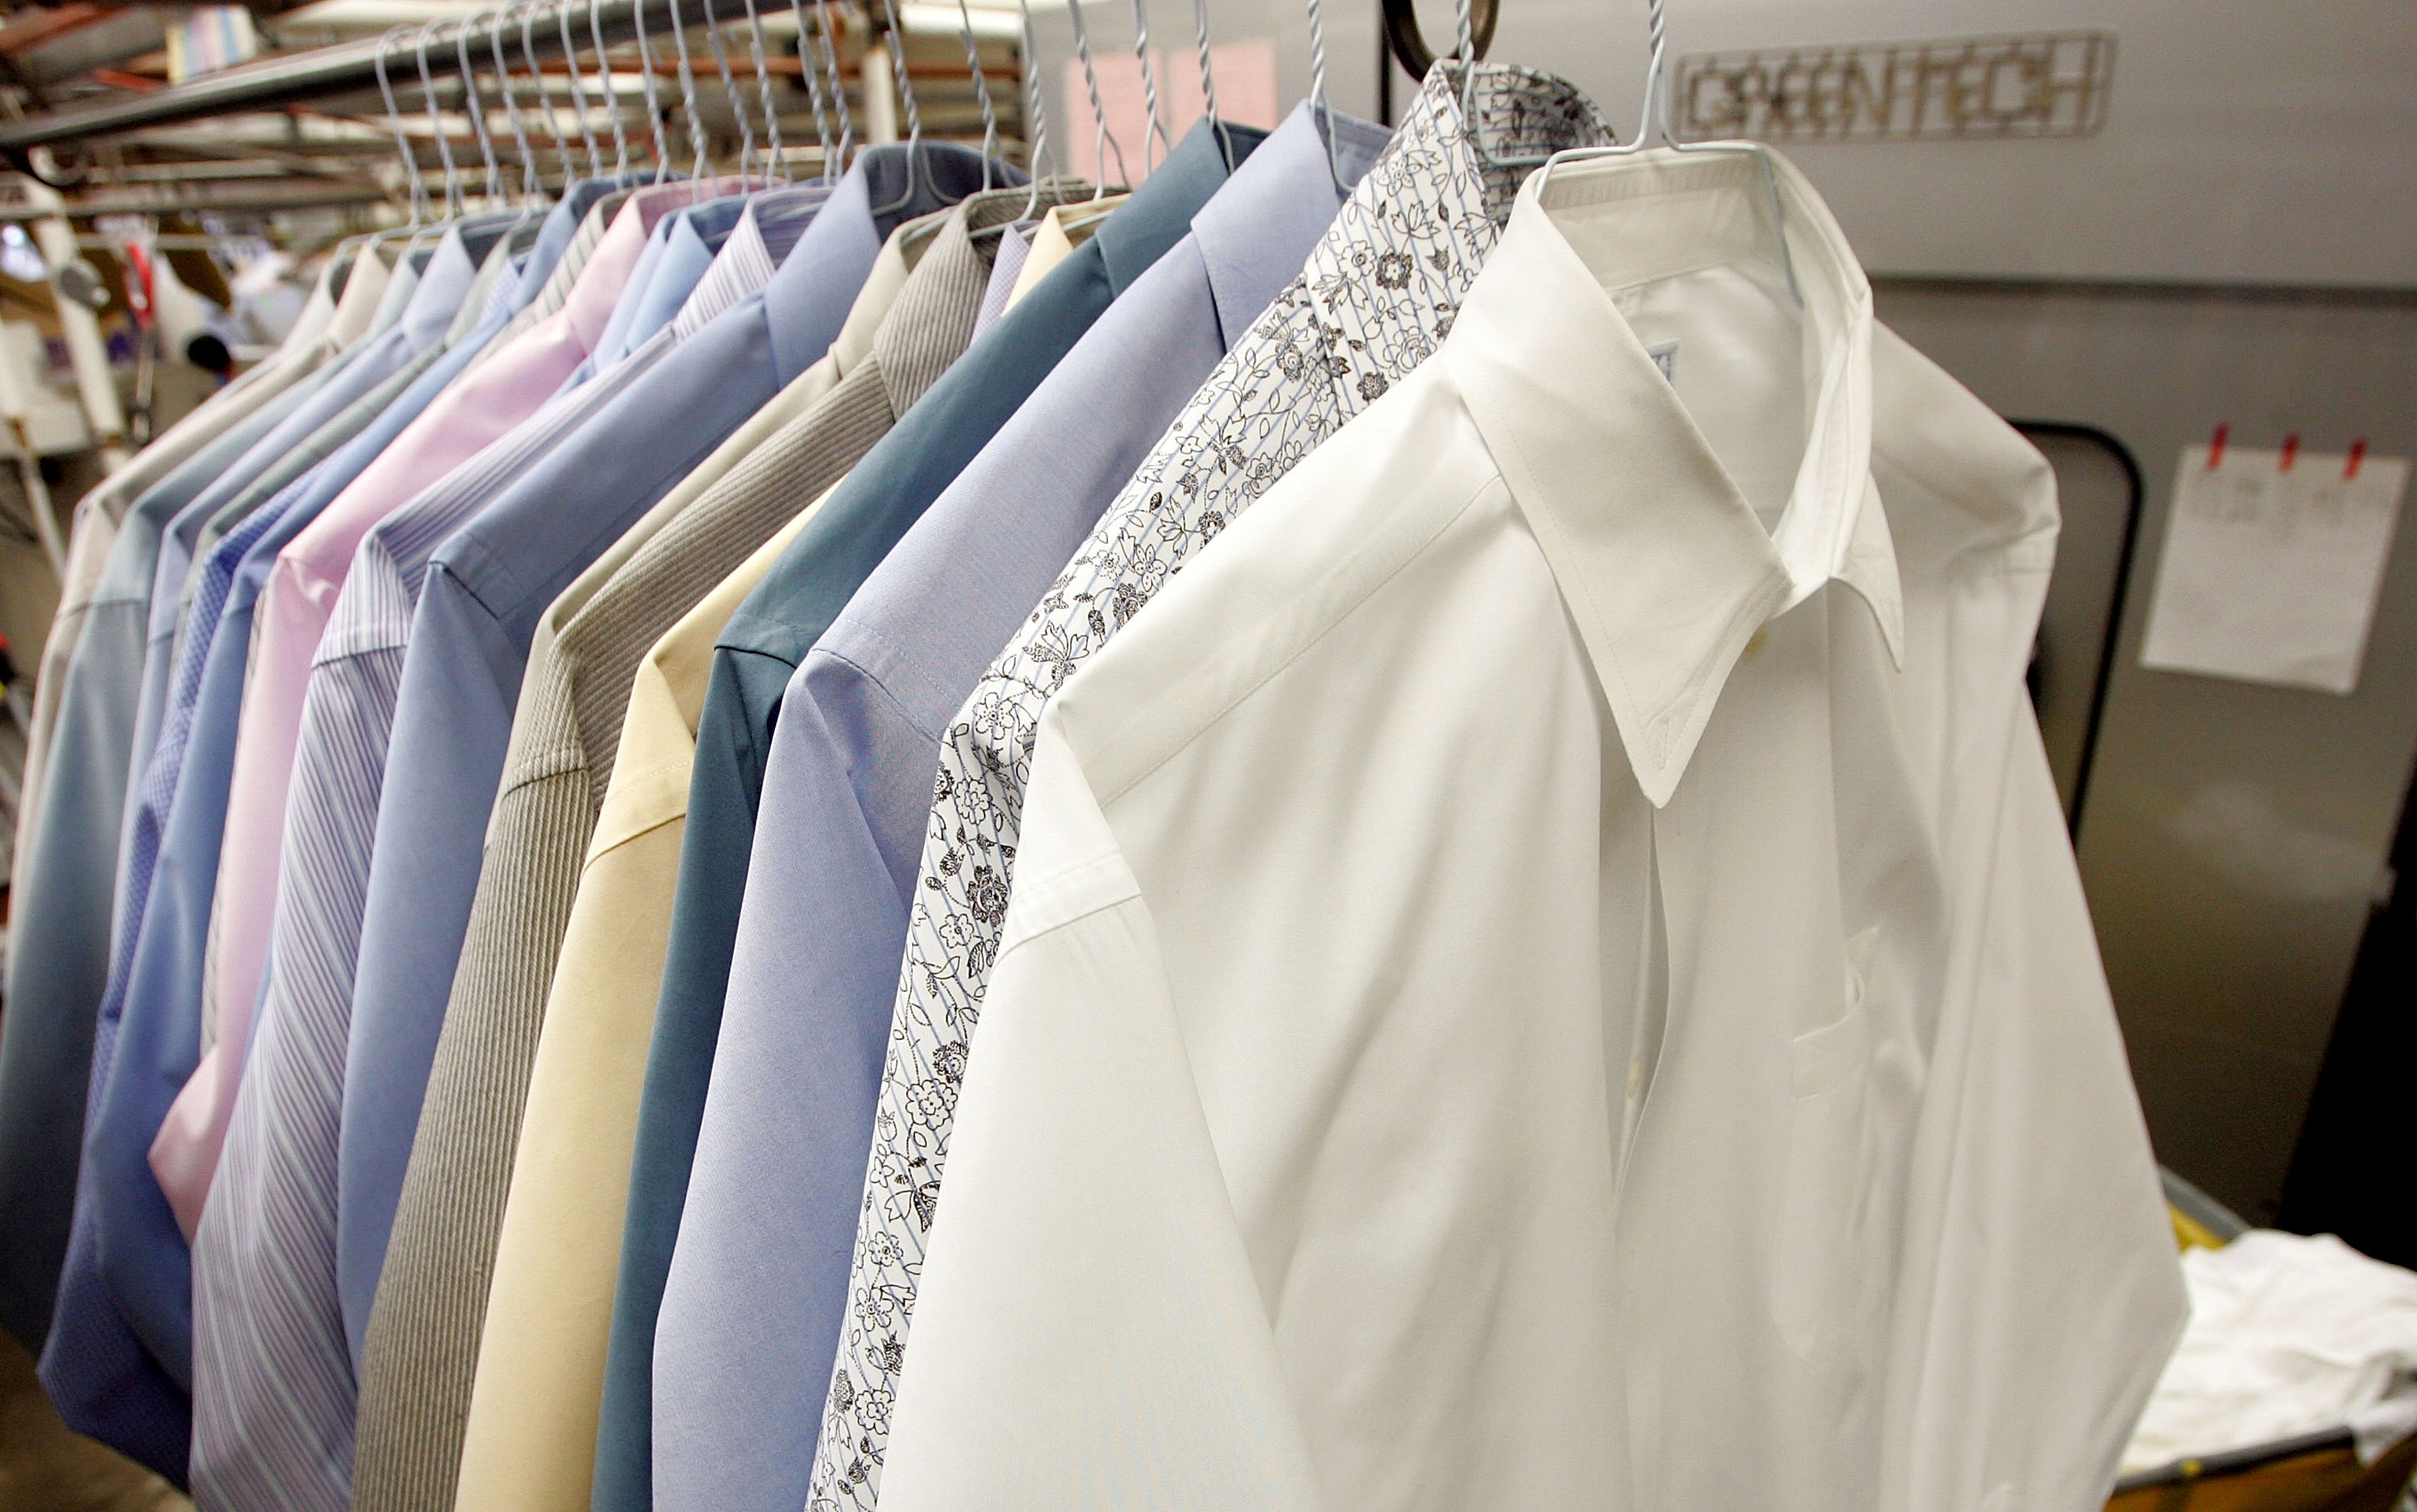 Button-down shirts at a dry cleaner's.